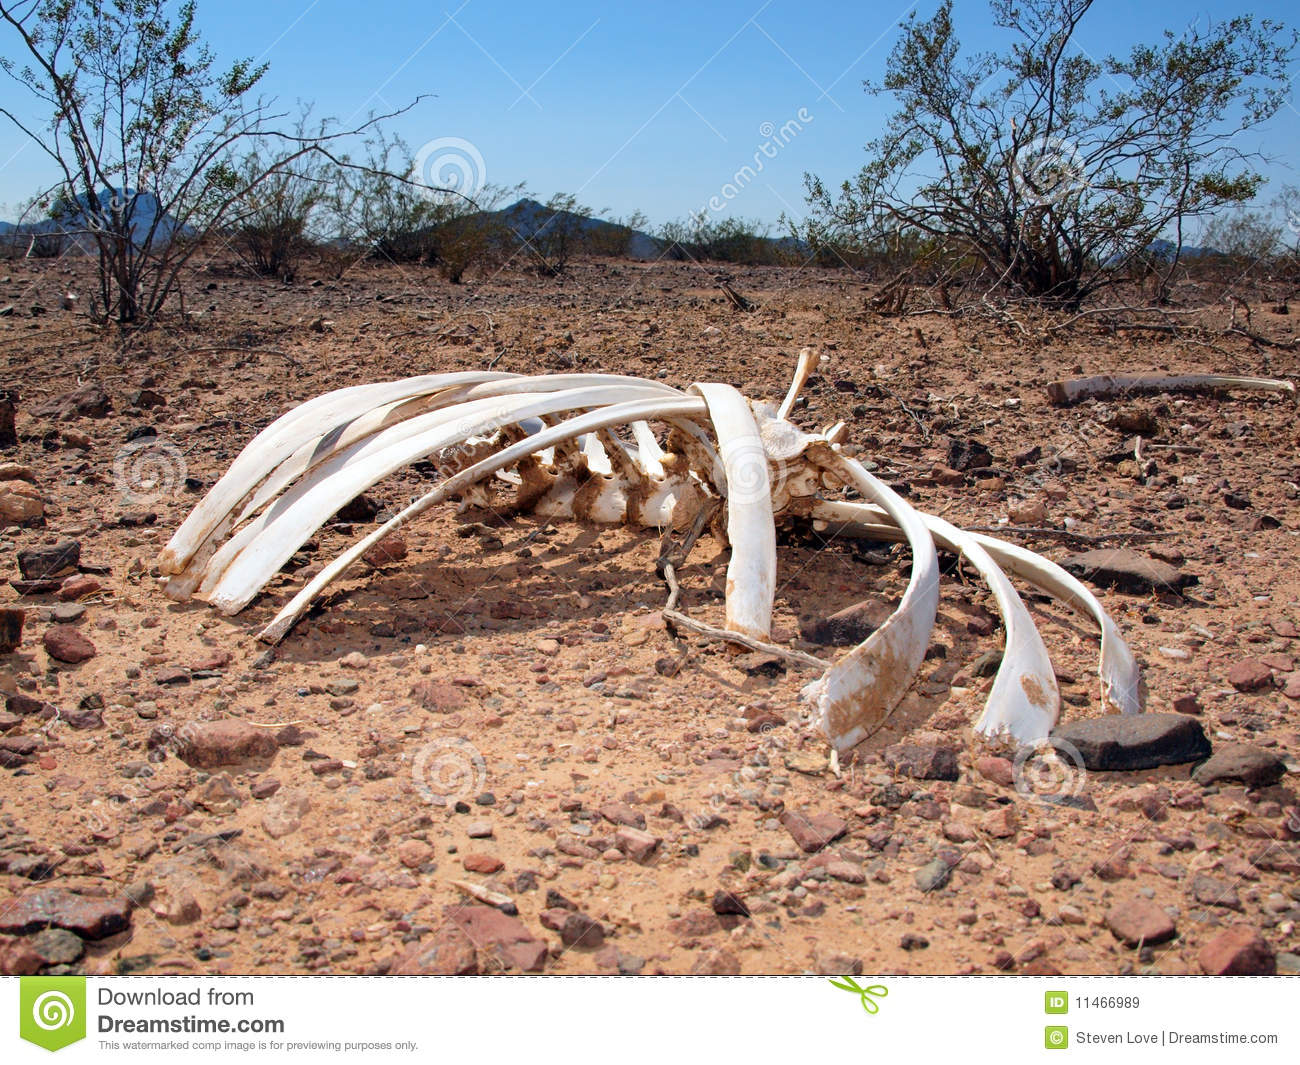 The Sun Bleached Bones Of An Animal That Died In Unforgiving